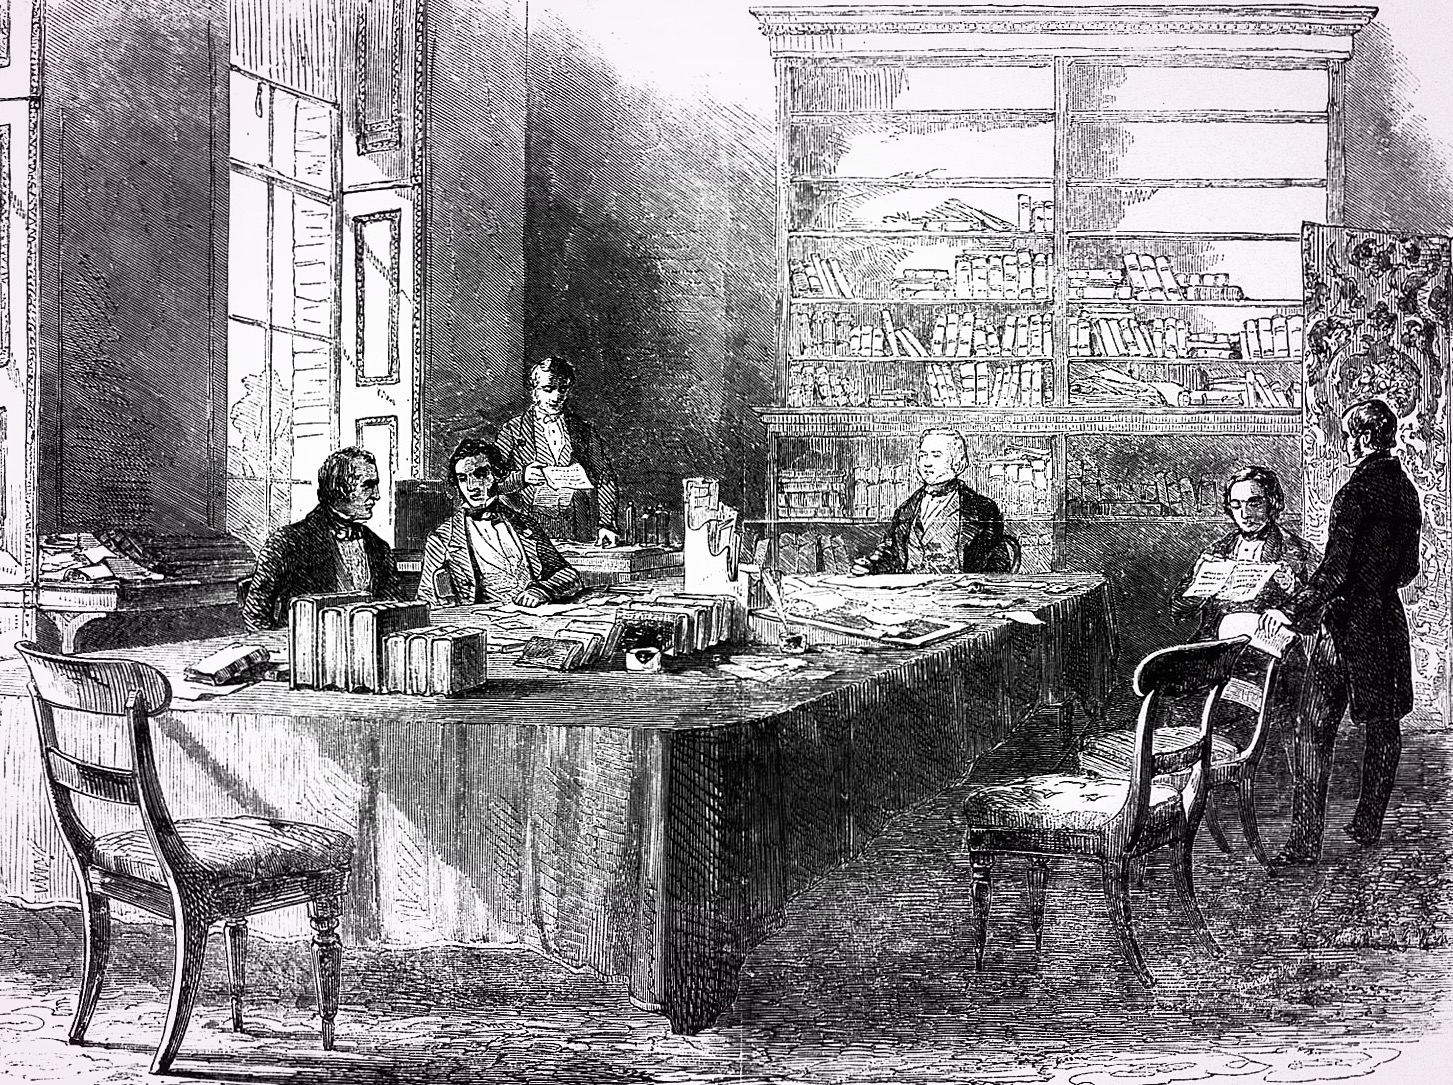 The Board of Health, Whitehall 1848